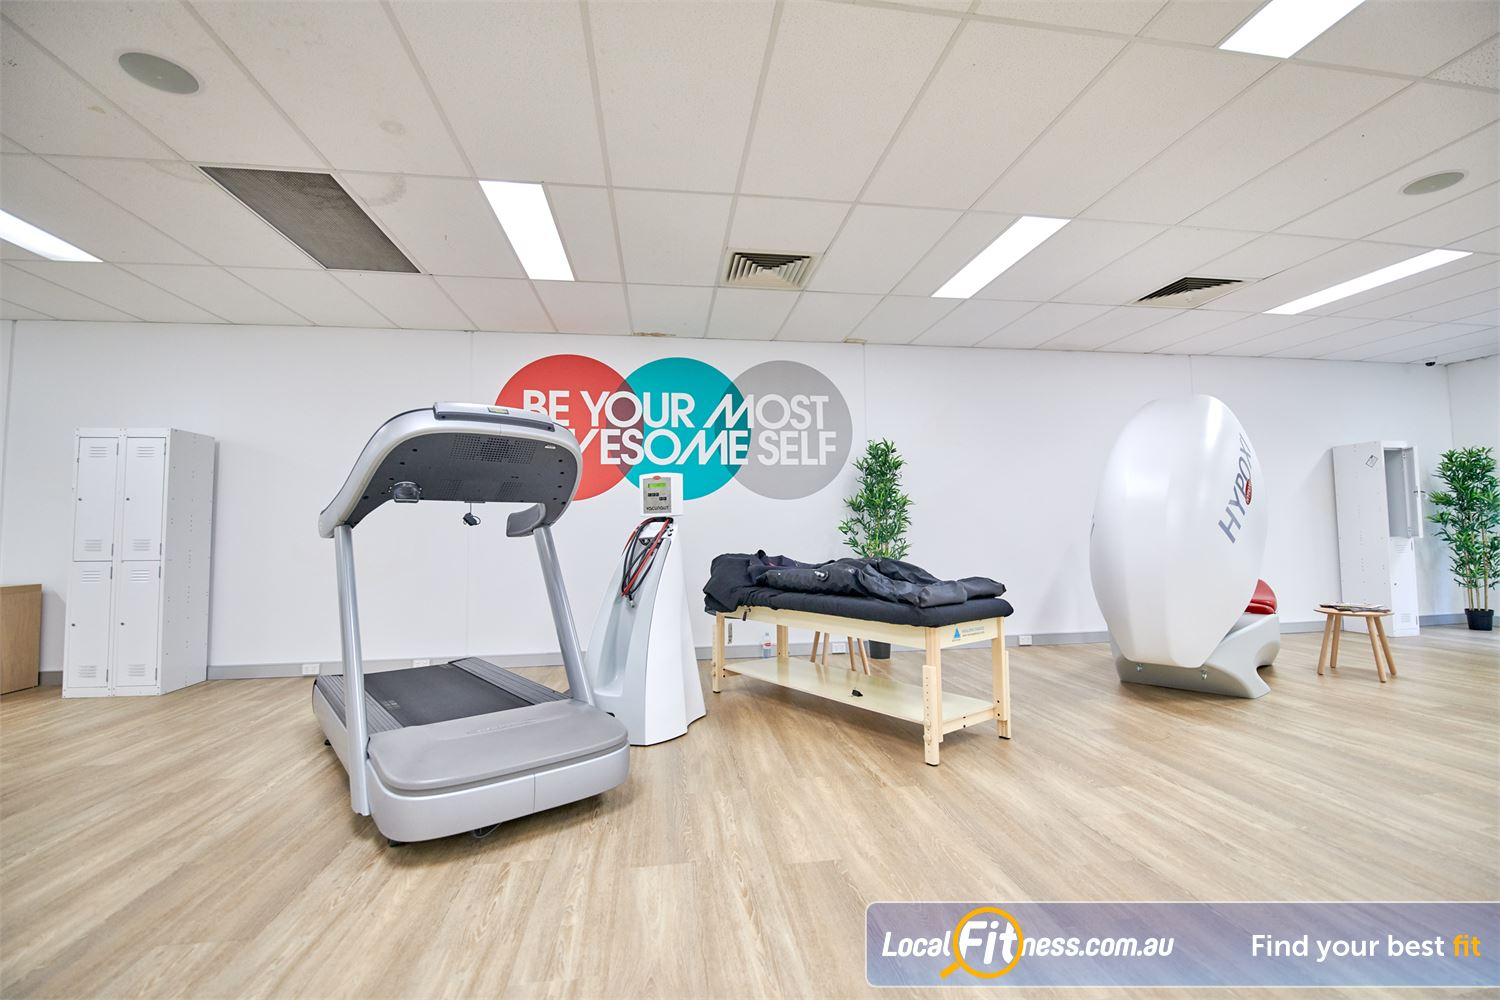 HYPOXI Weight Loss Camberwell The HYPOXI method will provide cellulite reduction in Camberwell.